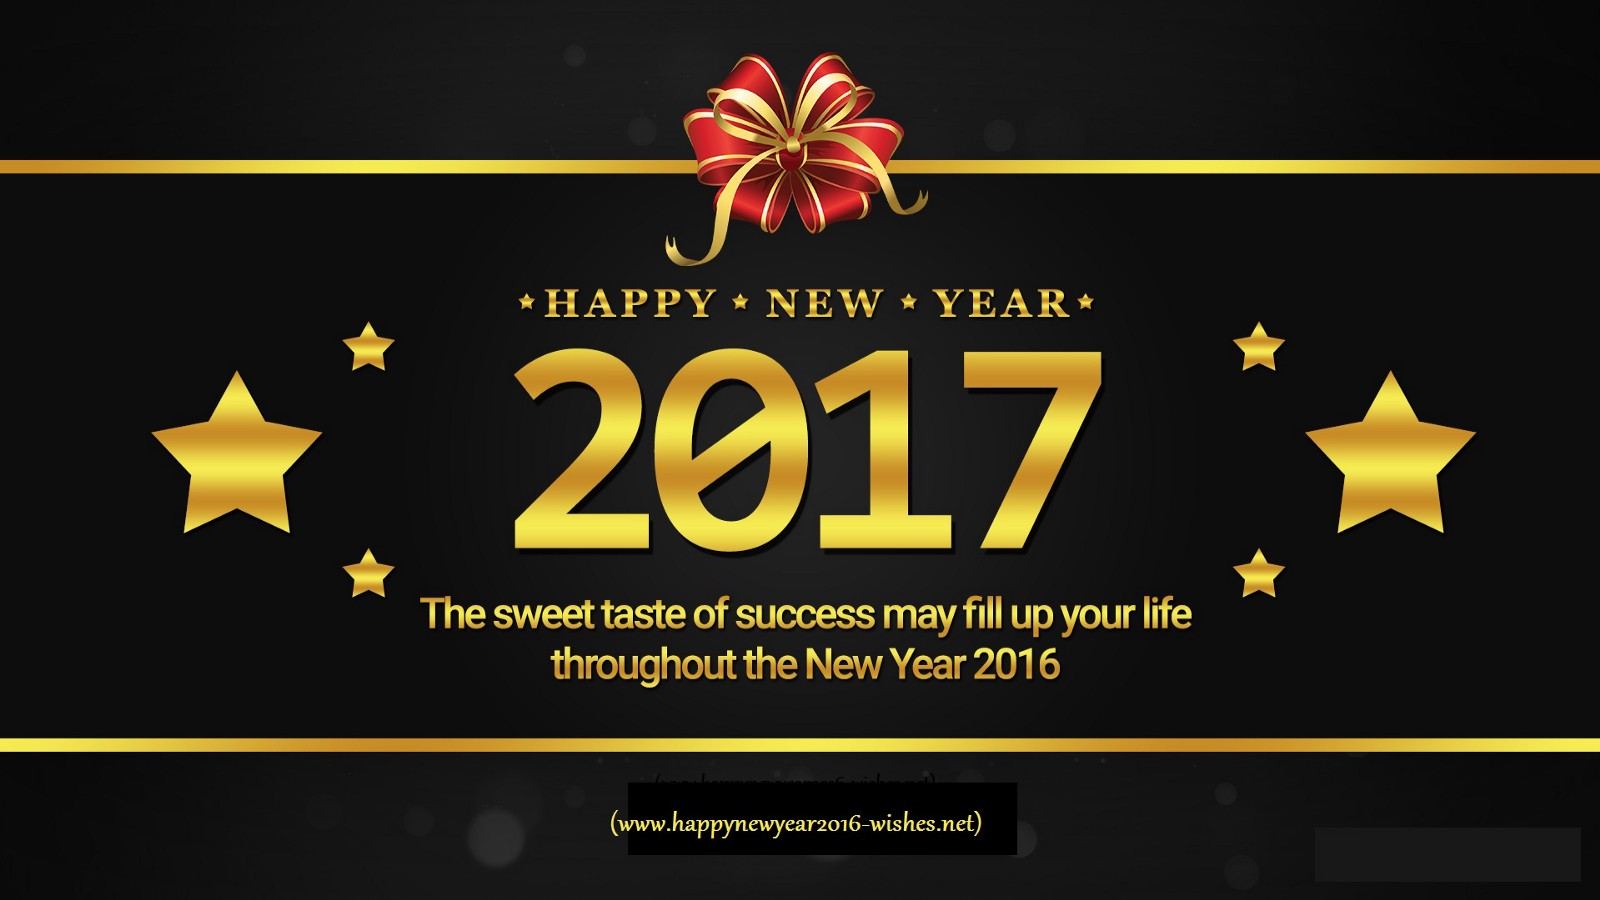 Happy New Year 2017 Images — New Year Wishes, Quotes, Wallpapers